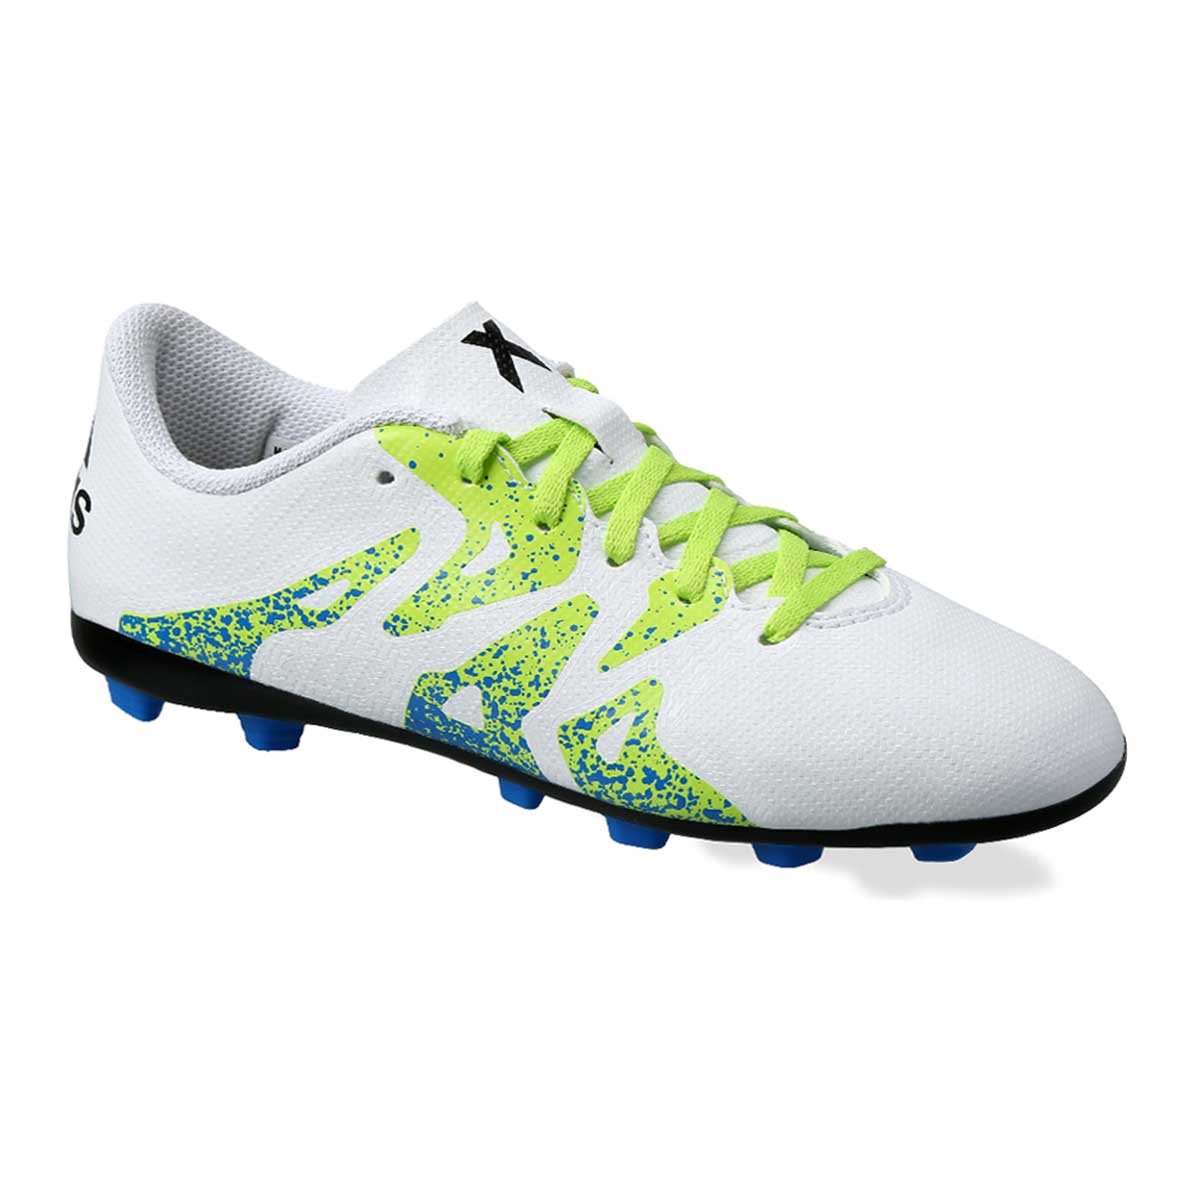 Buy Adidas X 15.4 FXG Football Shoes (White Green Black) Online 55cde0380